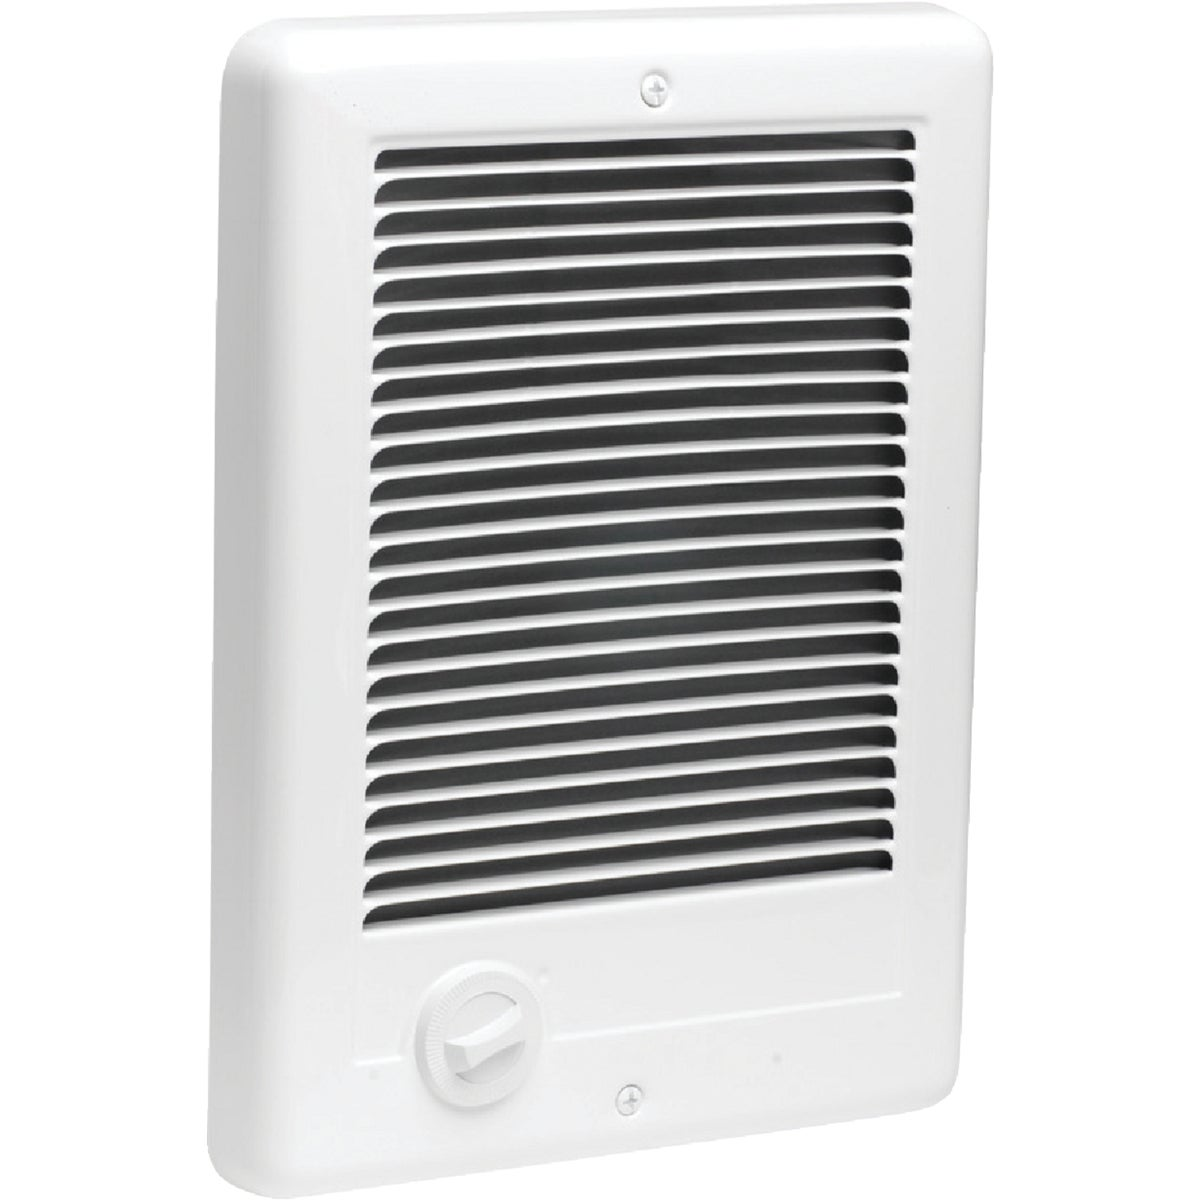 WHT FAN/WALL HEATER - 67507 by Cadet Mfg Co